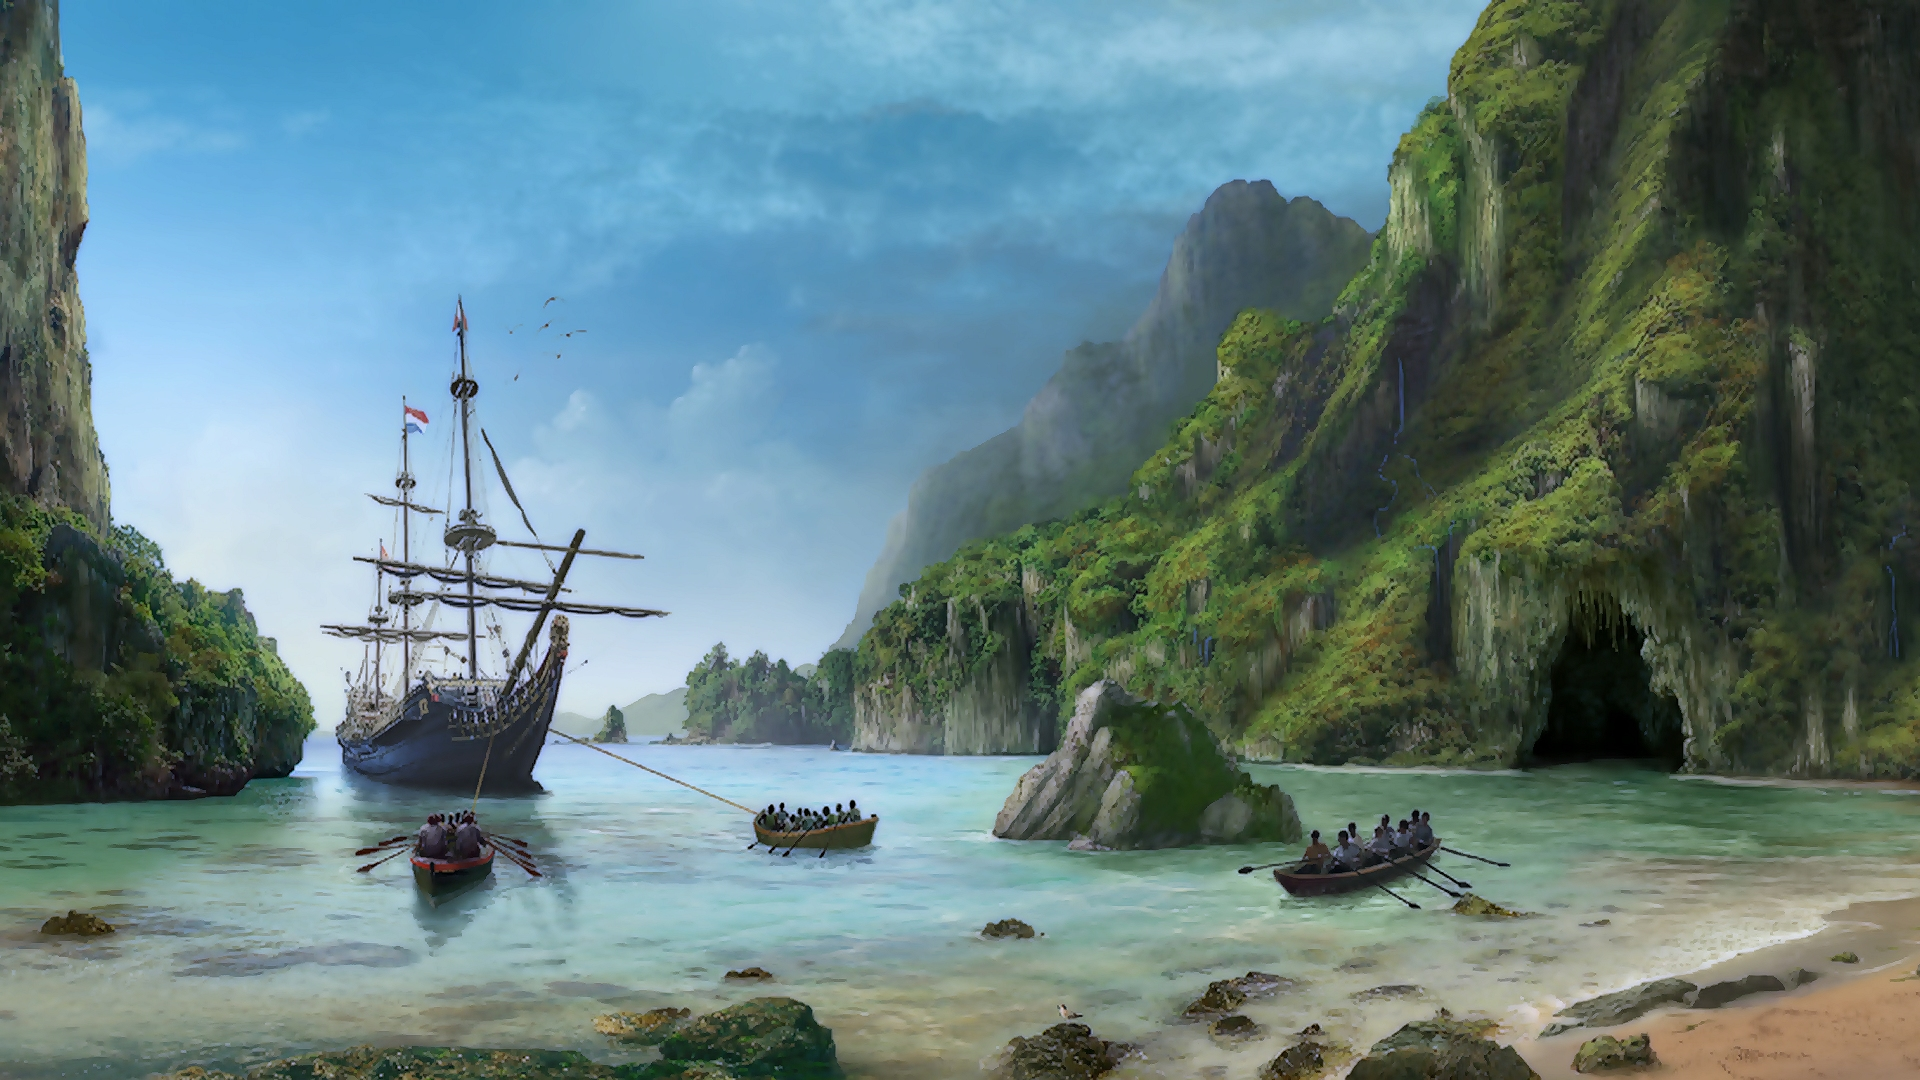 Pirate Ship Wallpaper Wallpapersafari HD Wallpapers Download Free Images Wallpaper [1000image.com]